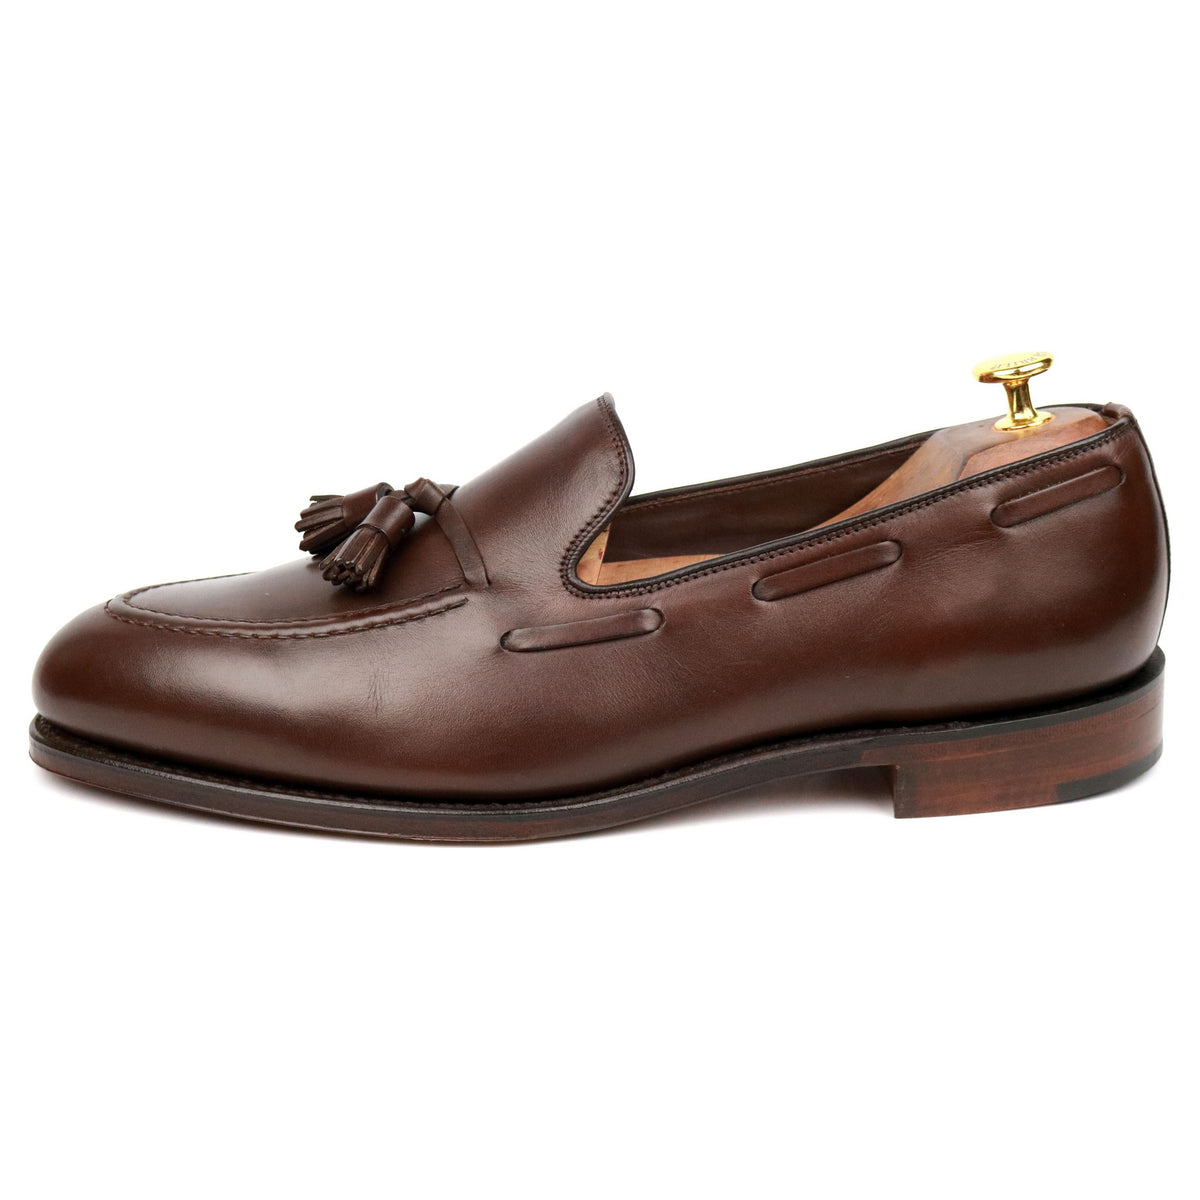 Loake 1880 'Russell' Brown Leather Tassel Loafers UK 10.5 F